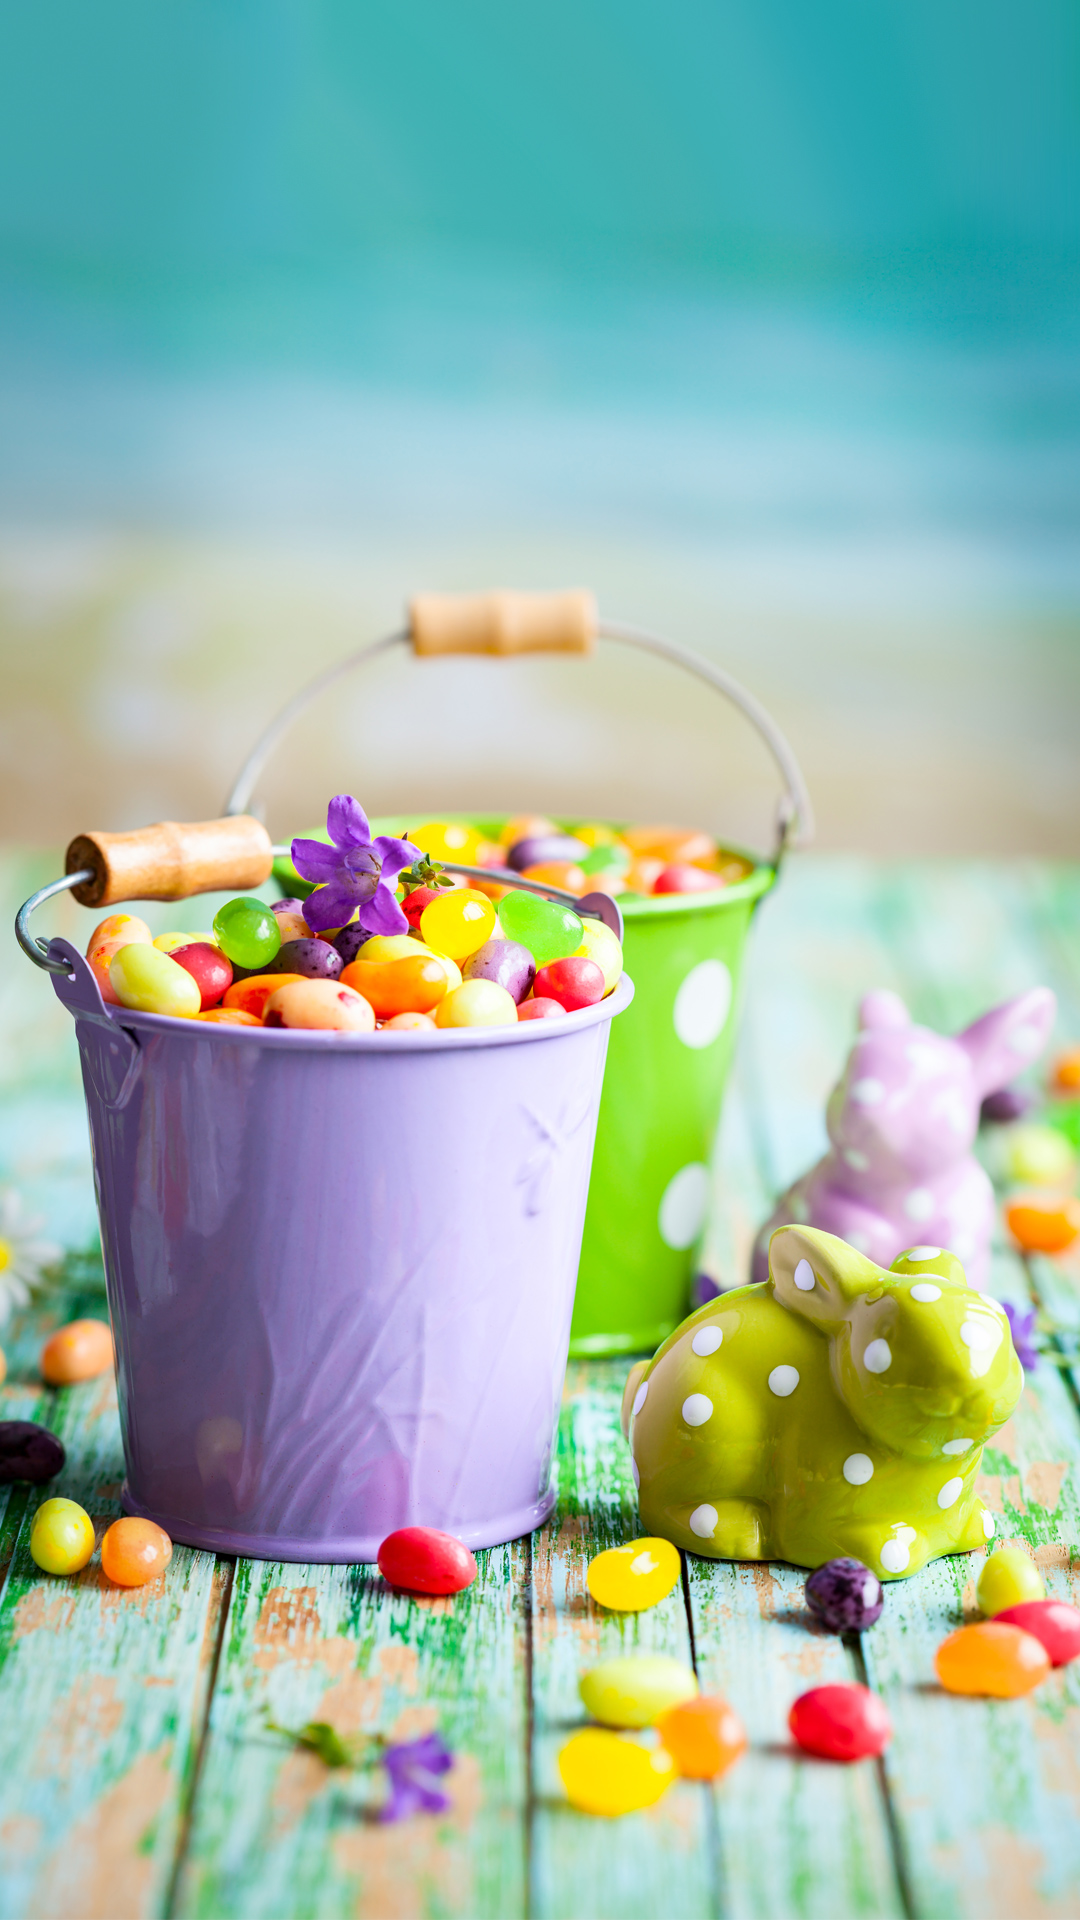 Cute Marshmallow Wallpaper Hd 52 Lovely Easter Iphone Wallpaper Godfather Style